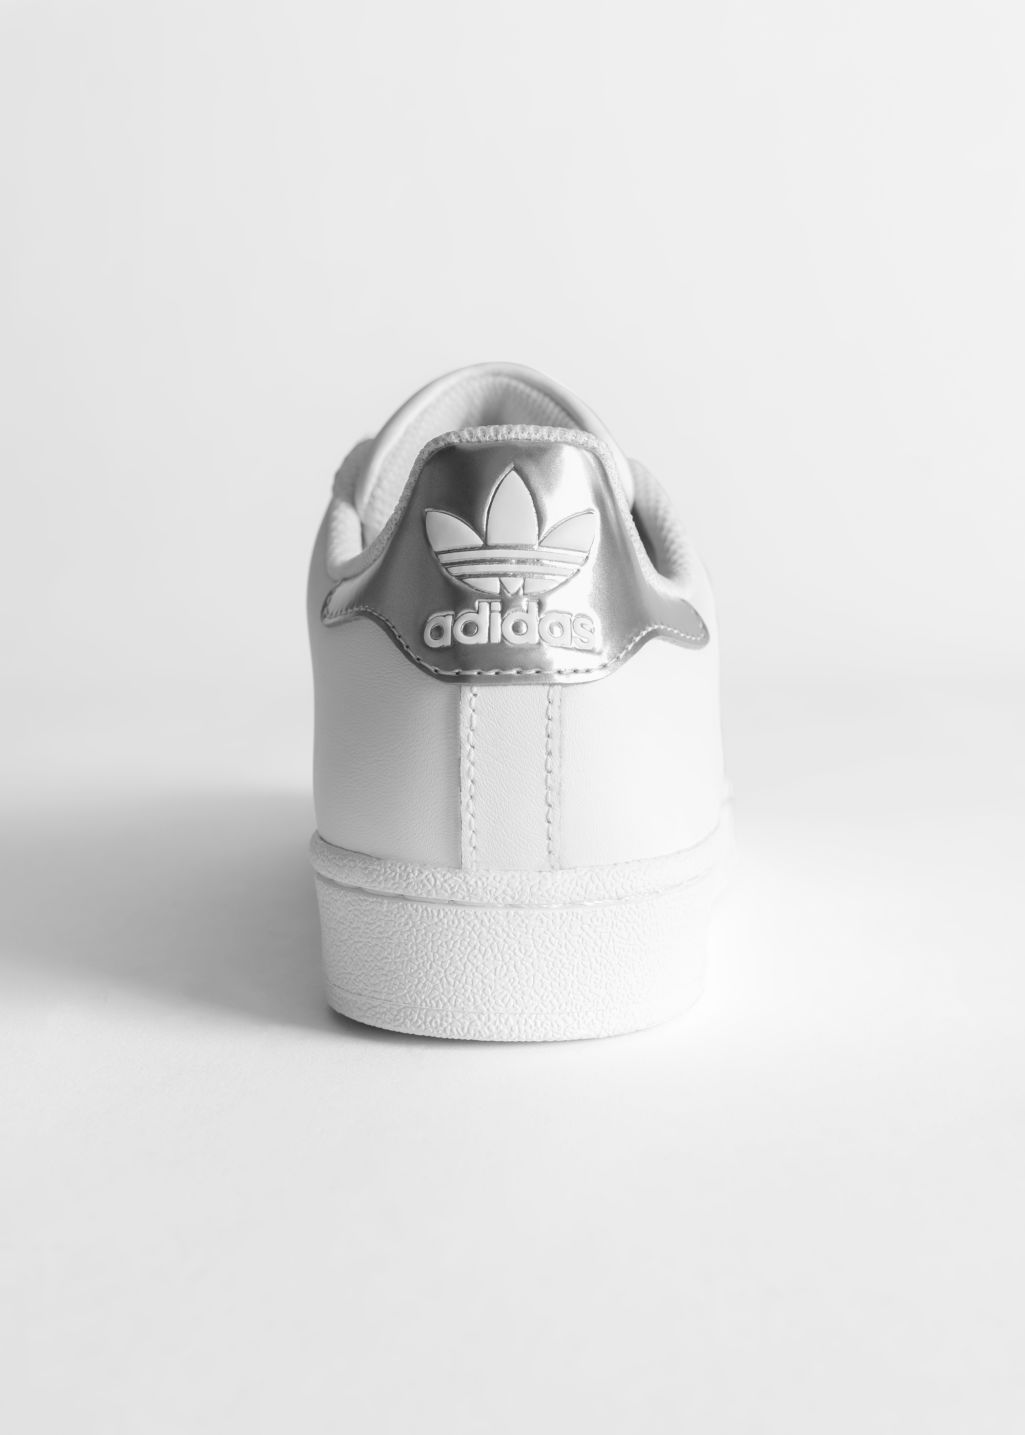 adidas superstar back